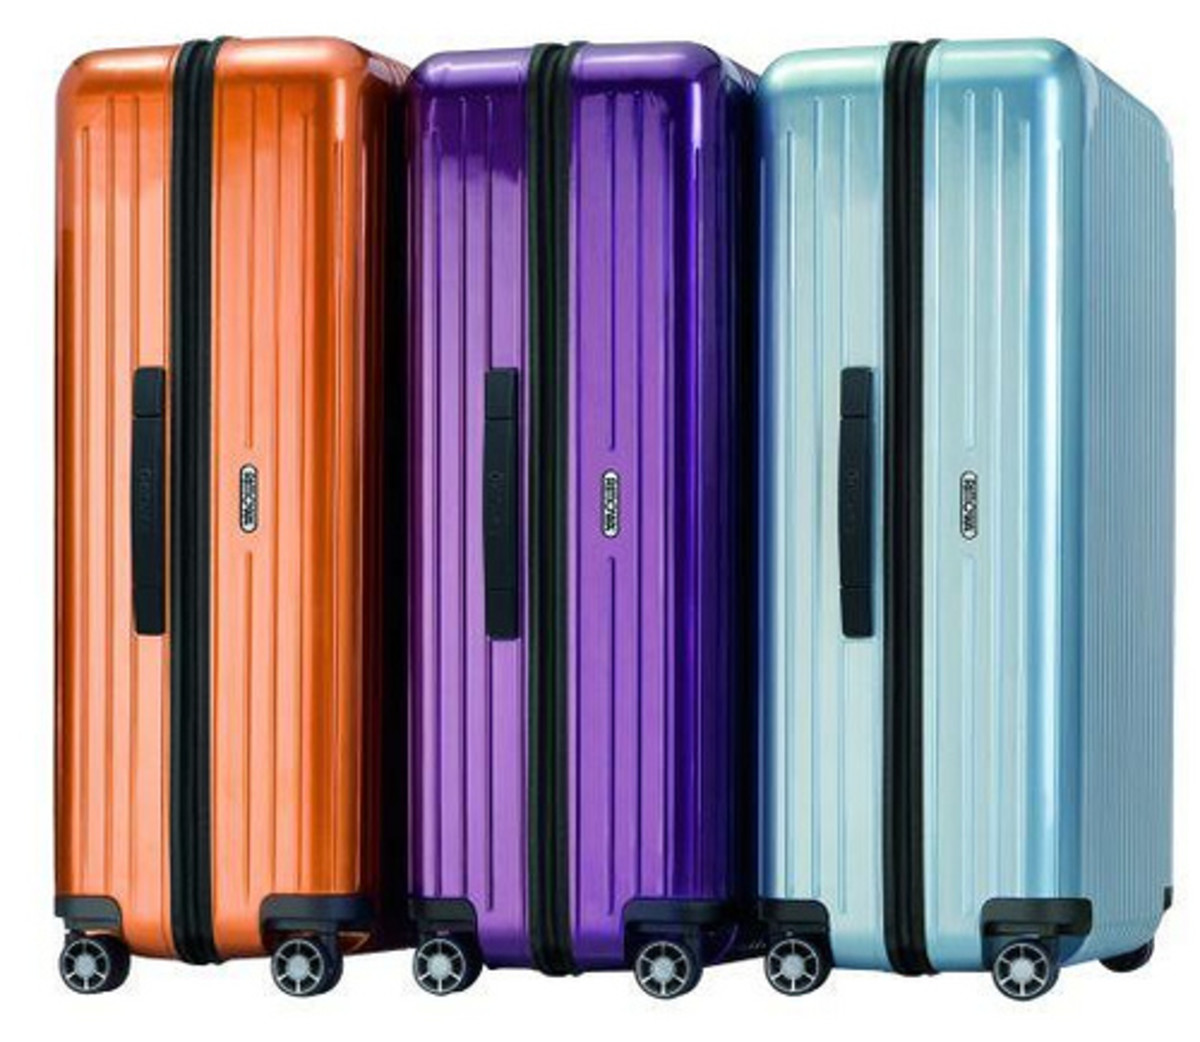 Rimowa Salsa Air http://www.airlineintl.com/catalog/rimowa-salsa-air